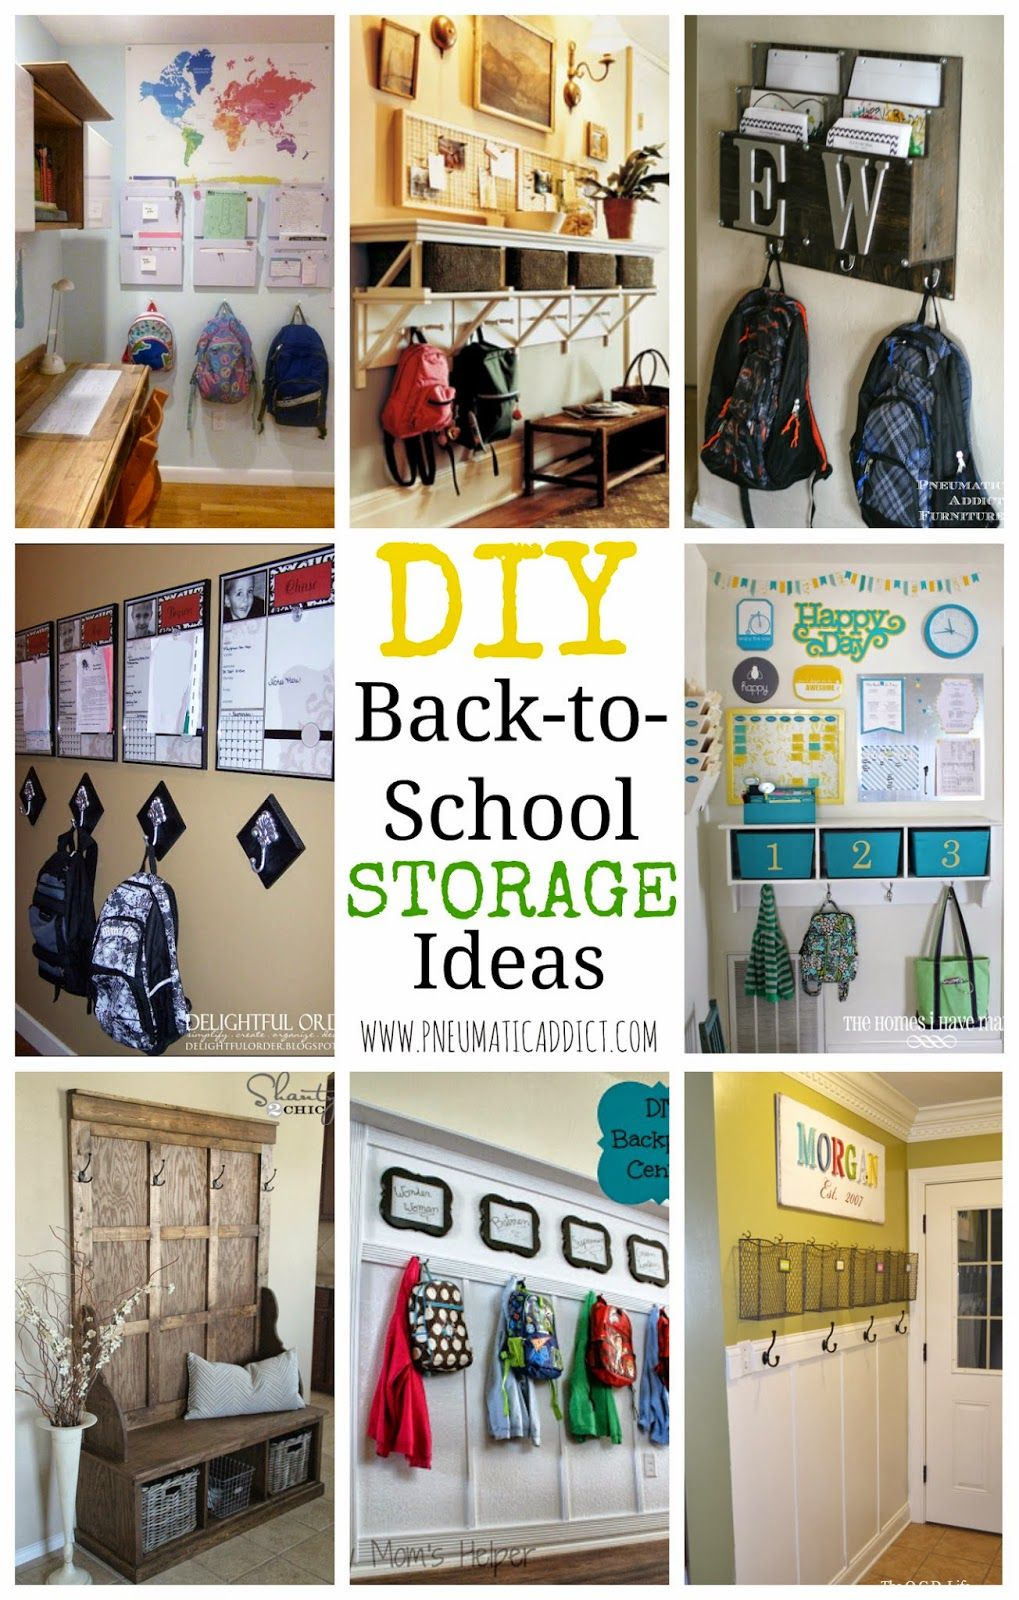 DIY BacktoSchool Storage Ideas Home organization hacks